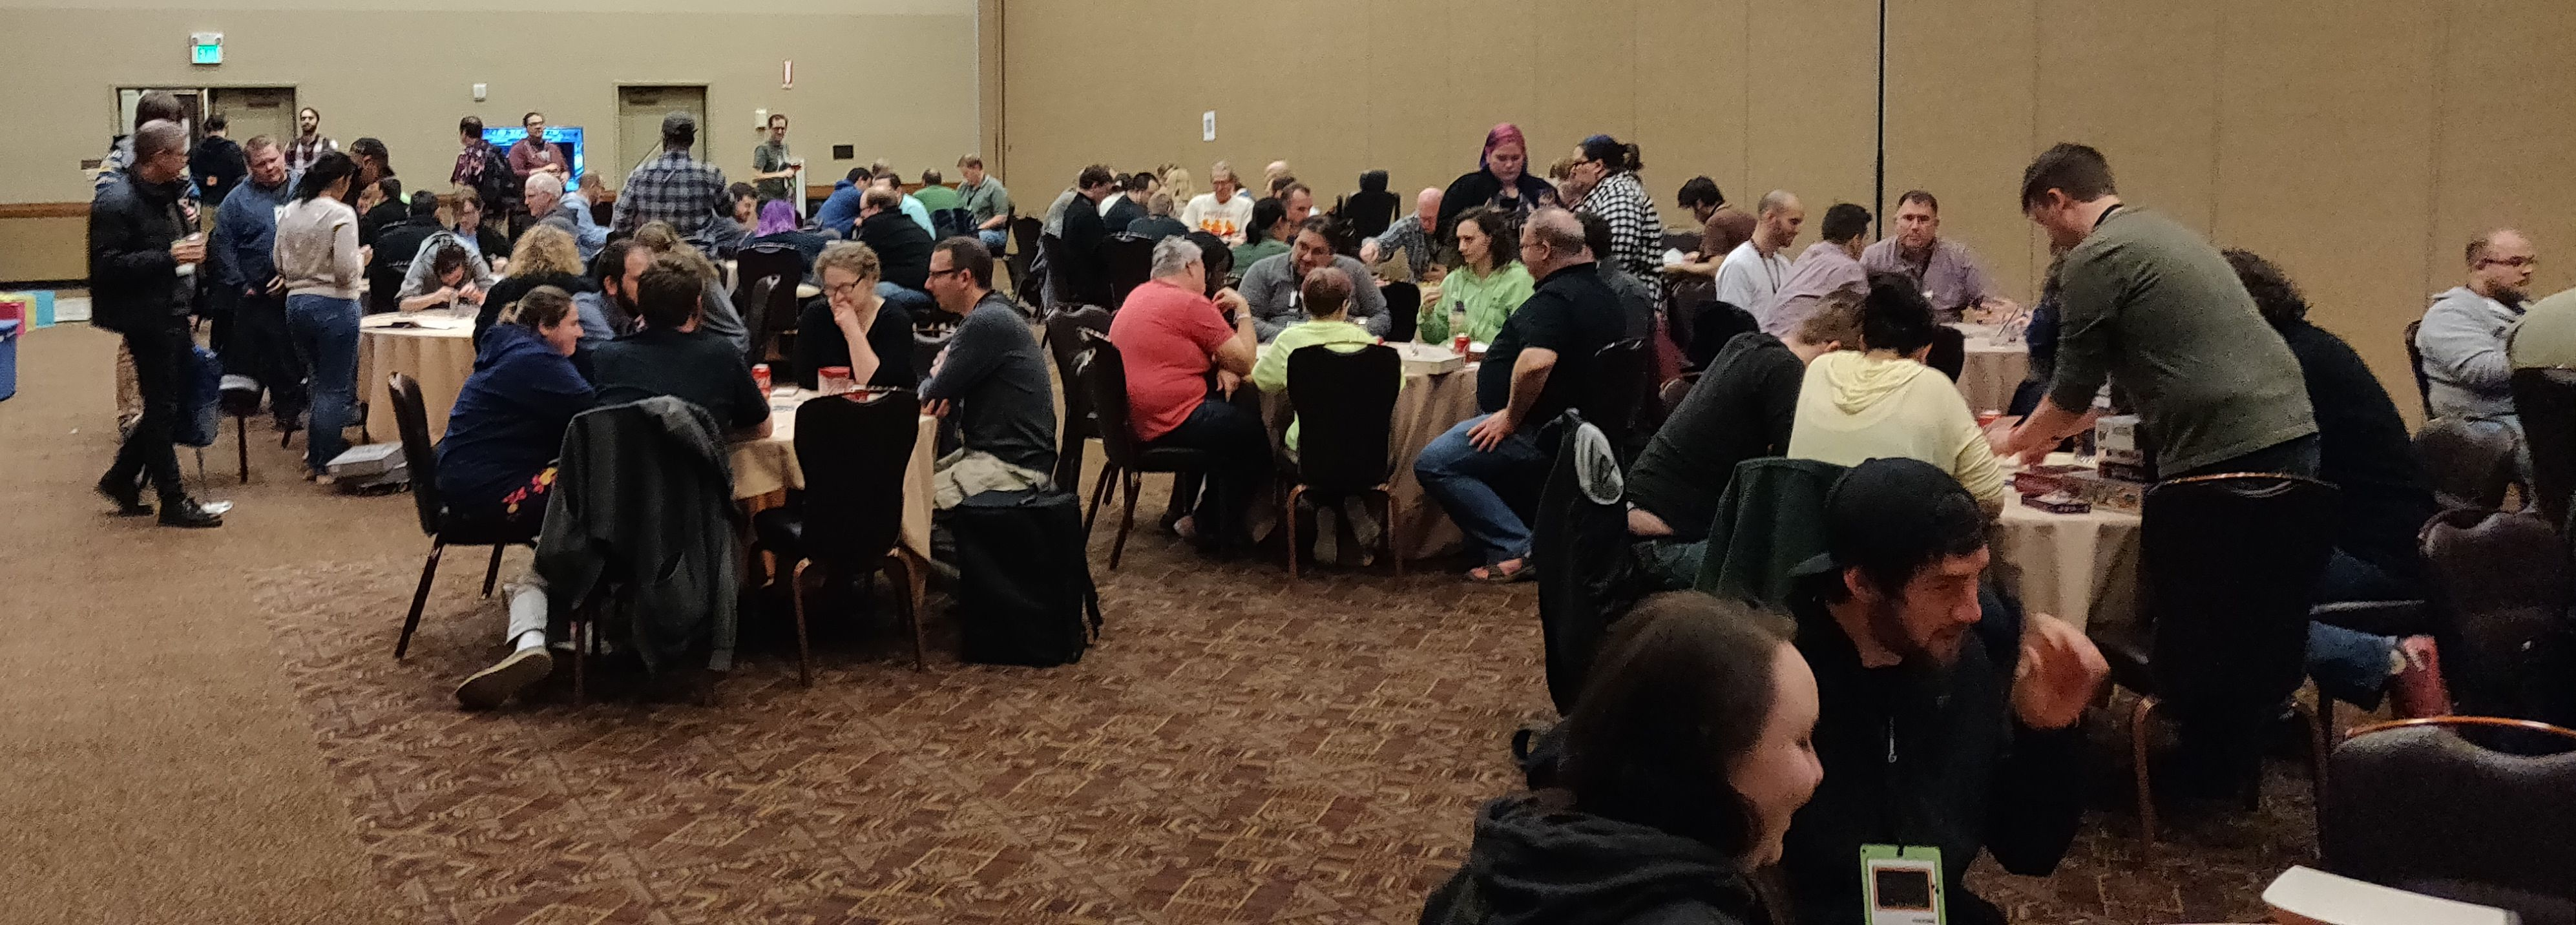 codemash 19 game room